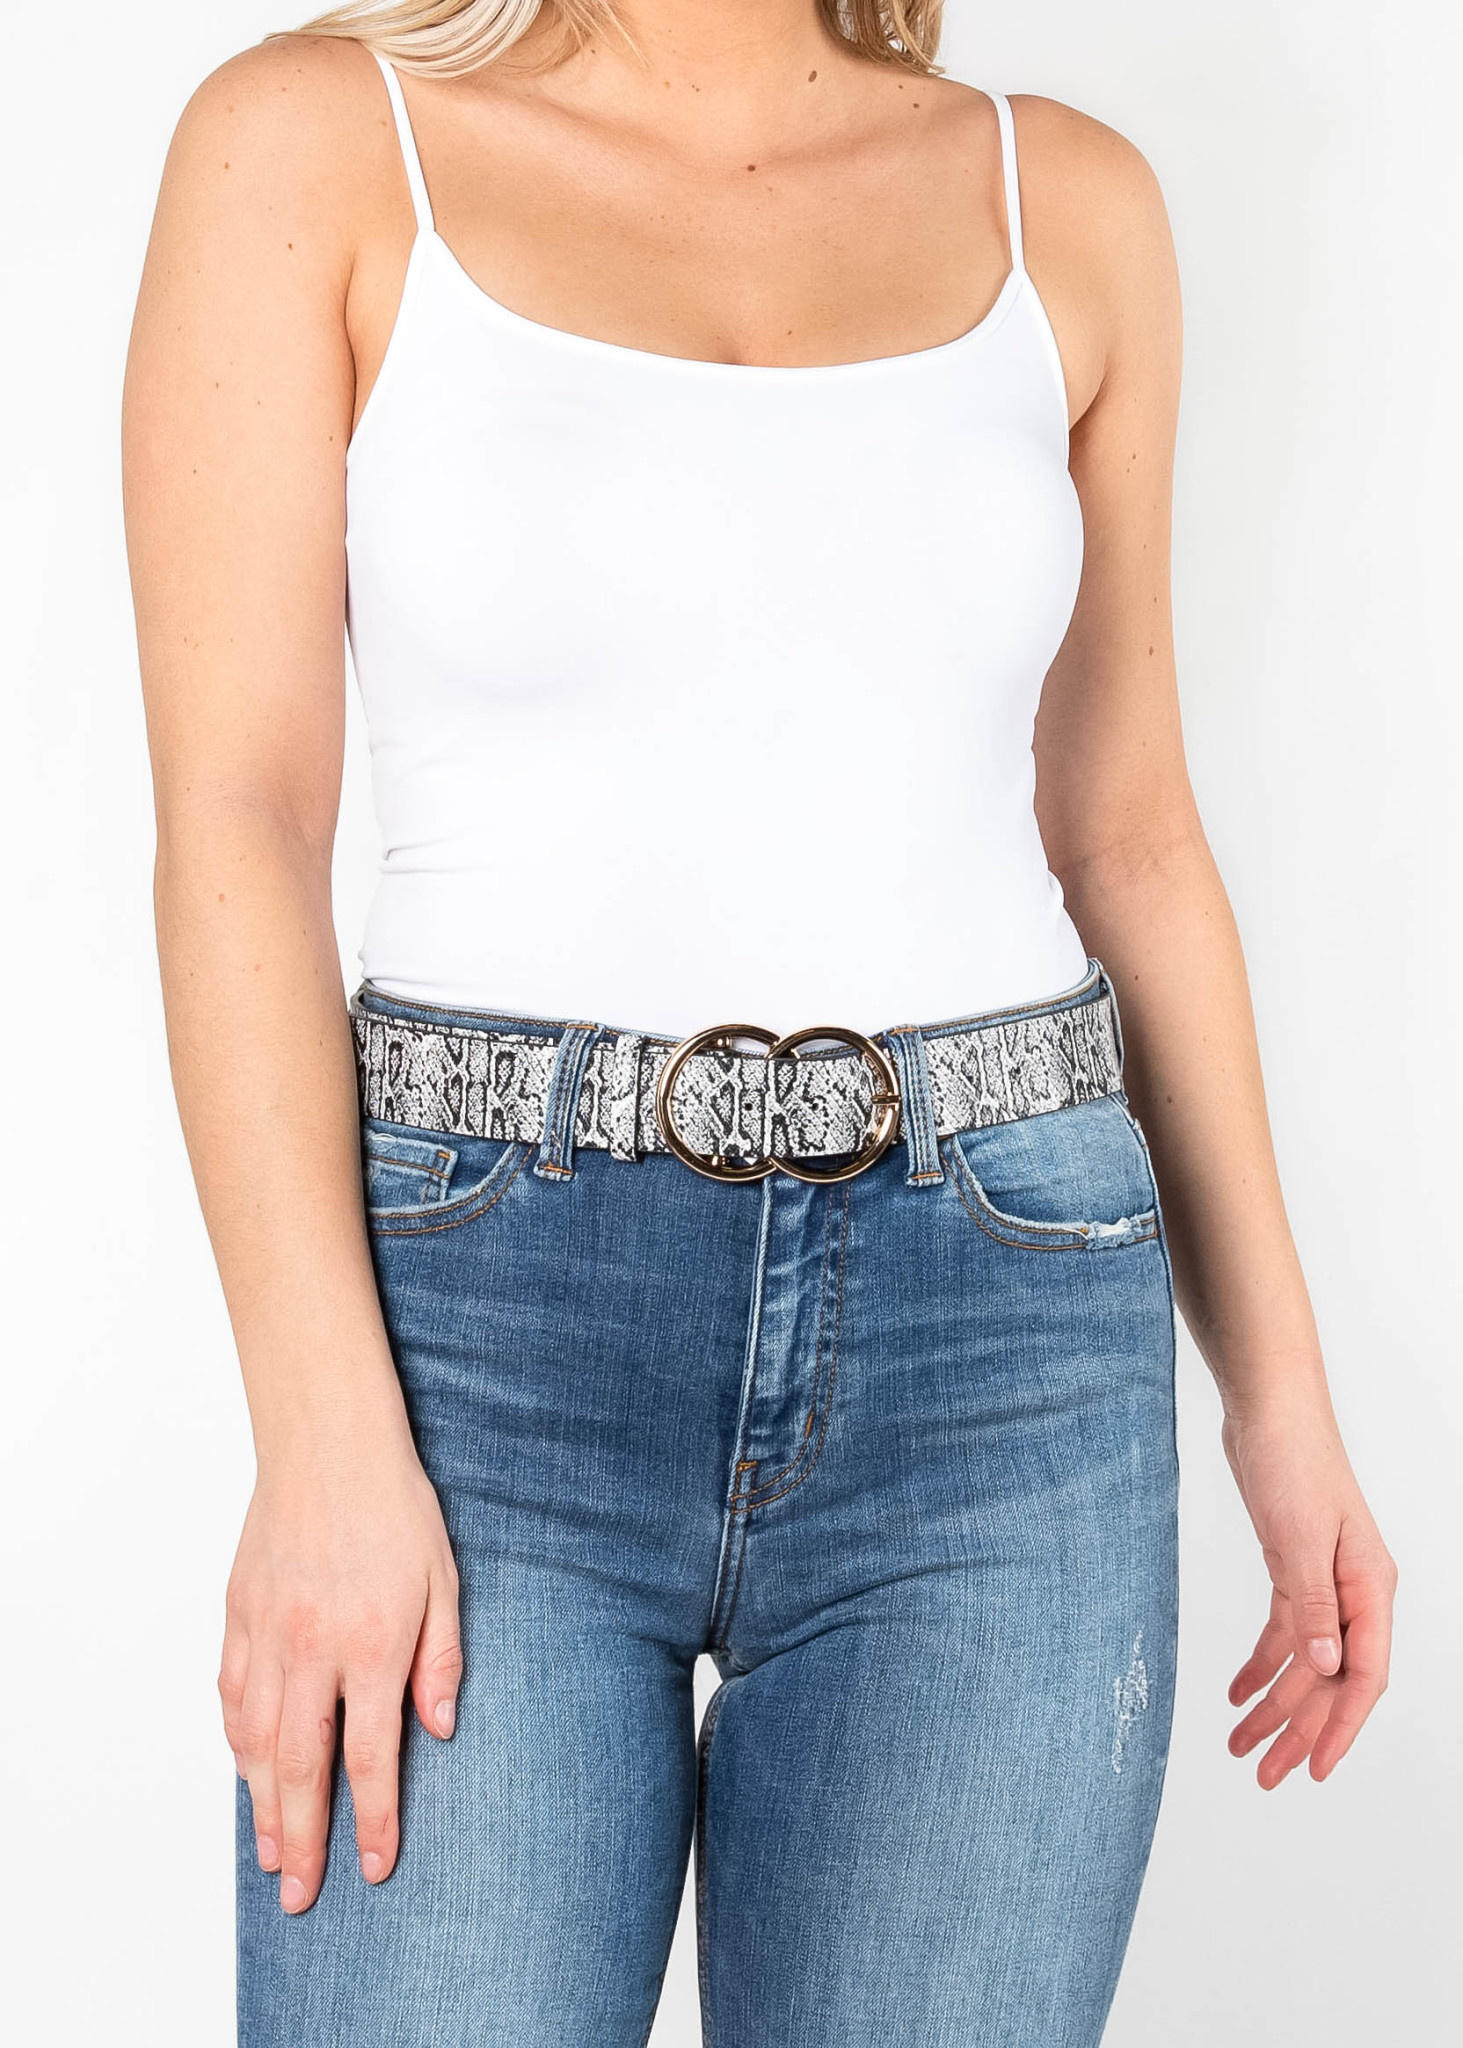 CHARMER PRINTED BELT - BLACK